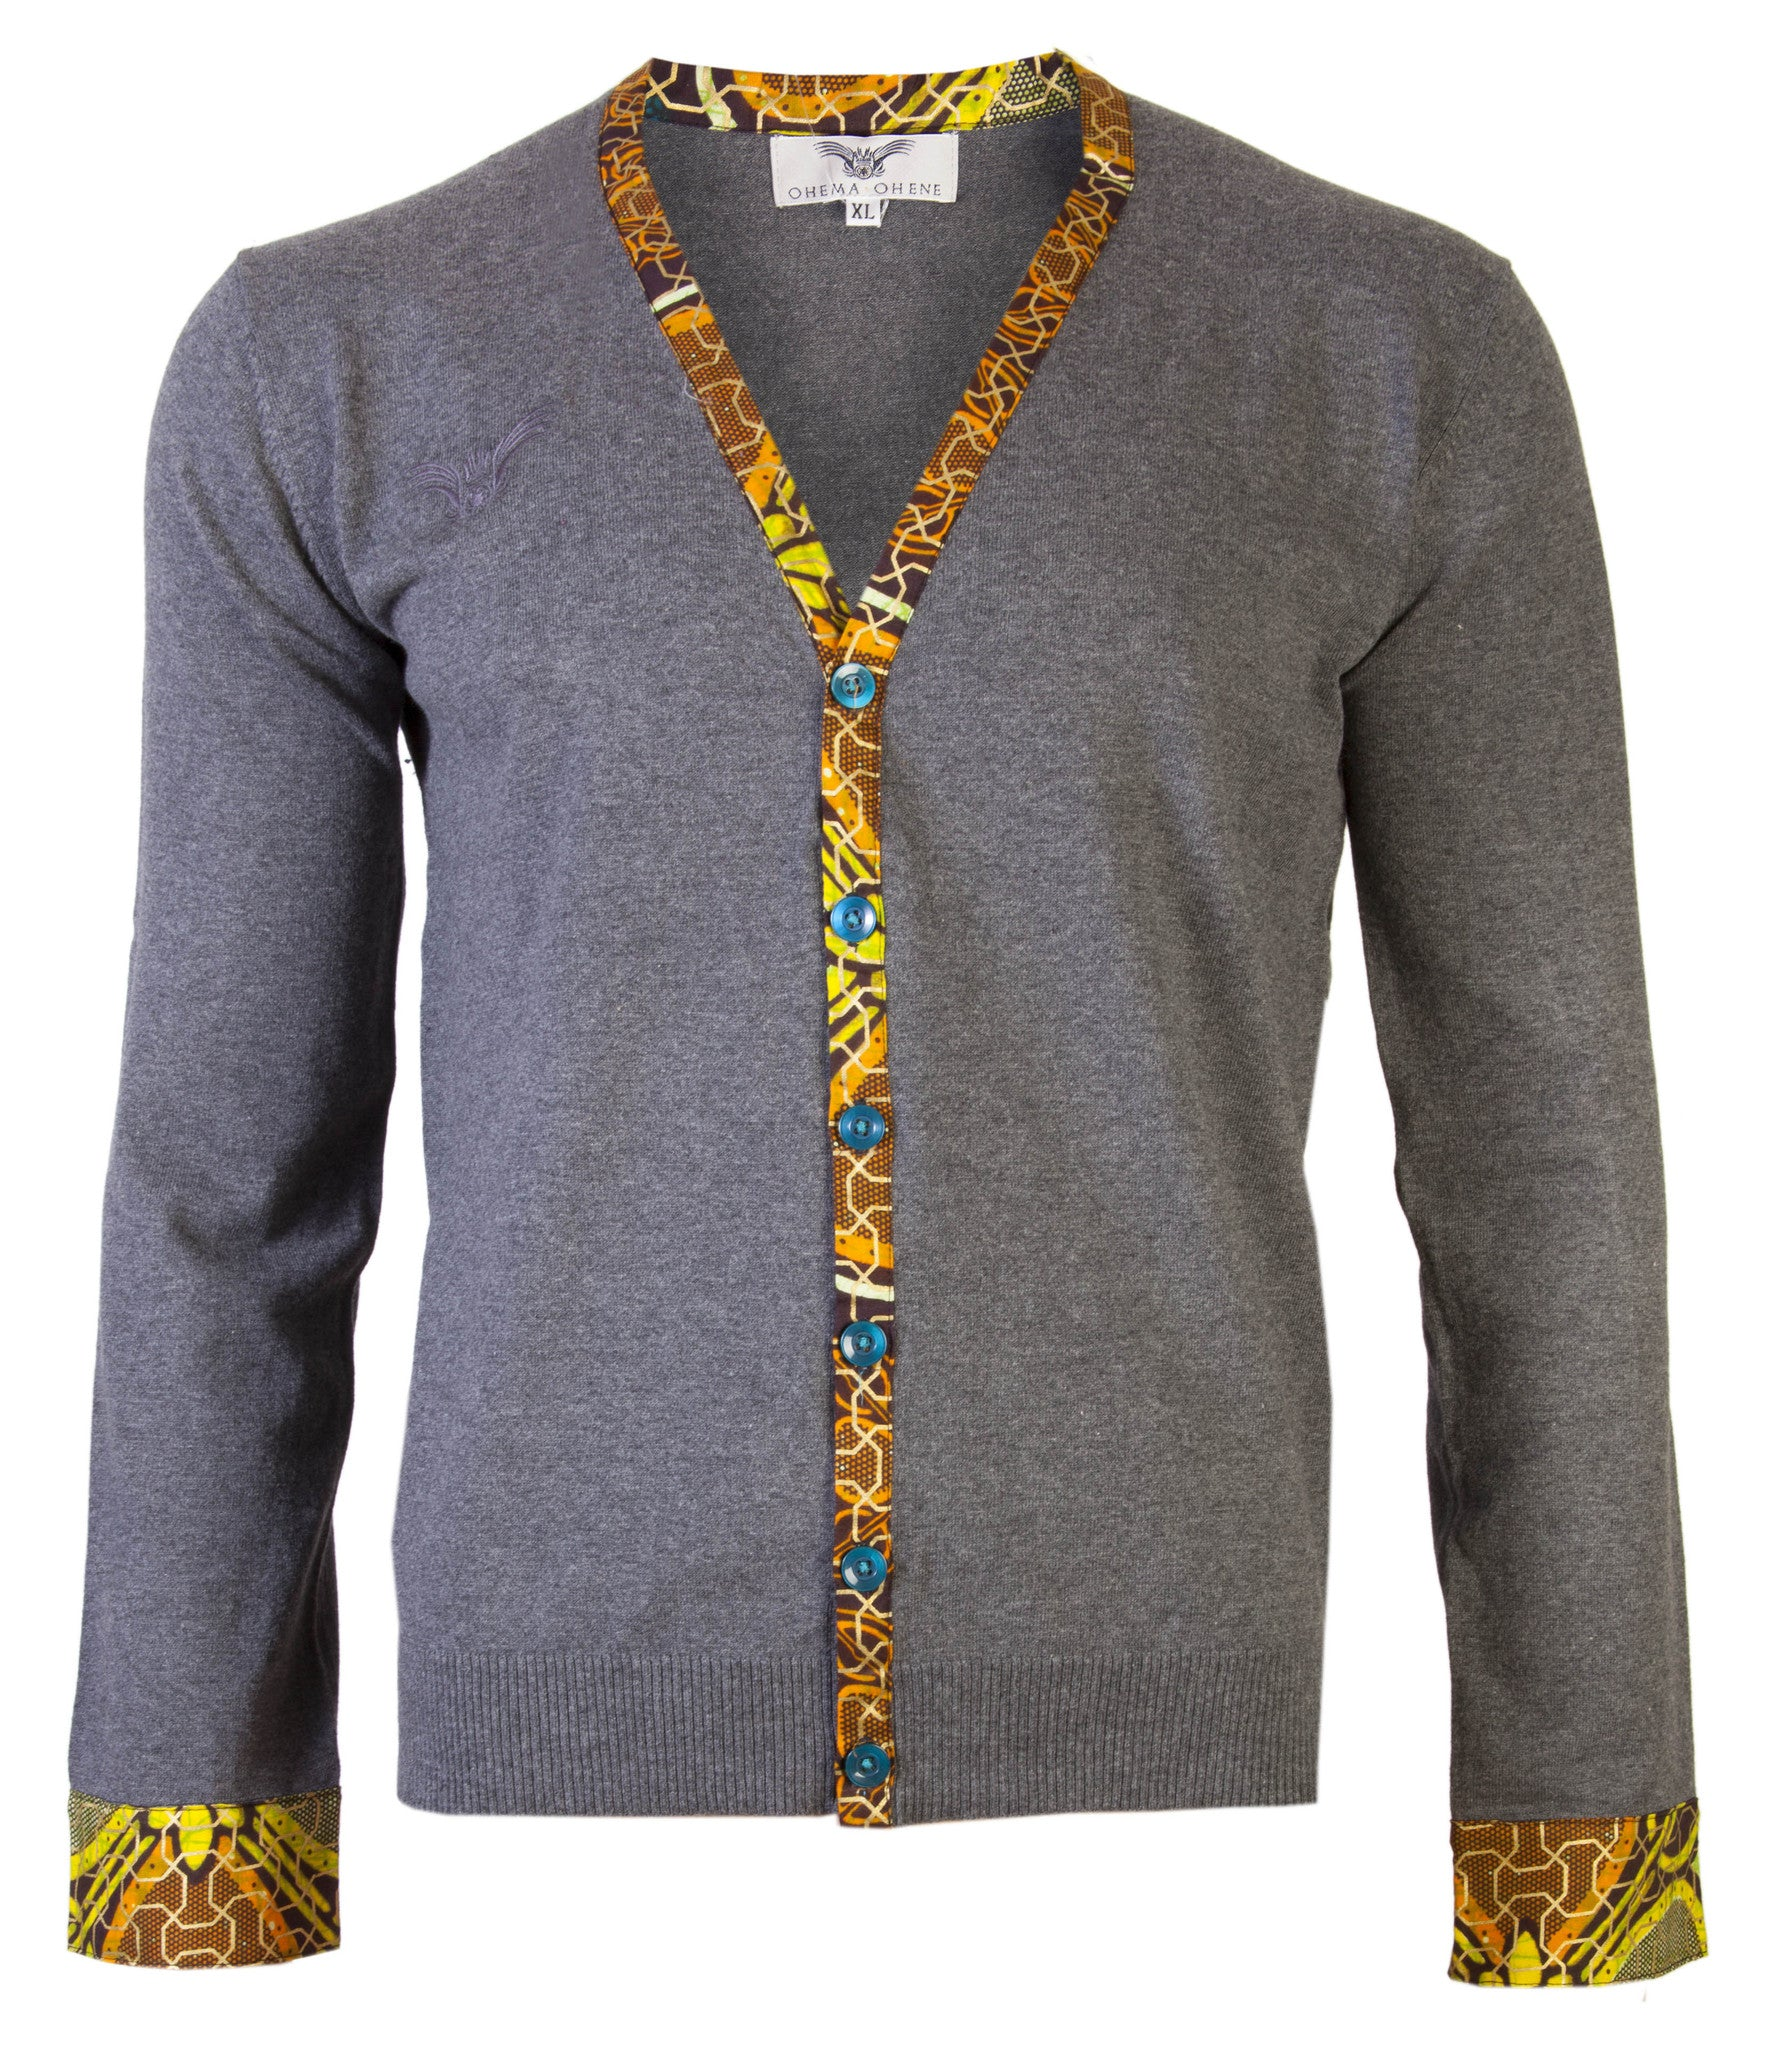 Men's Printed cuff detail cardigan - OHEMA OHENE AFRICAN INSPIRED FASHION  - 1